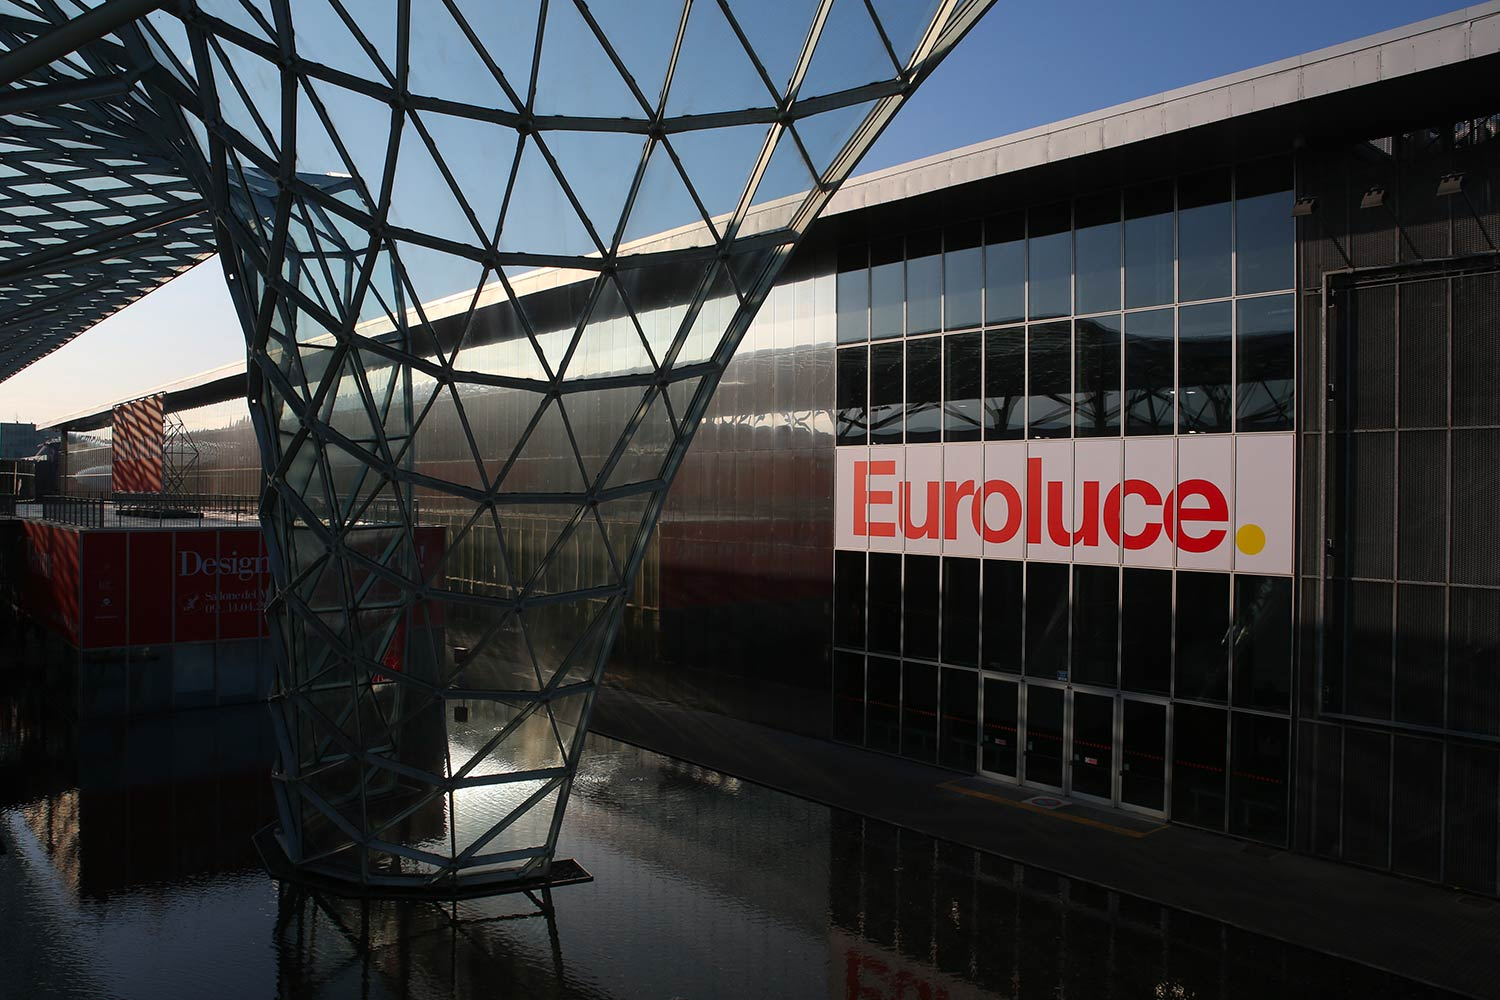 Euroluce 2019 thank you to everyone